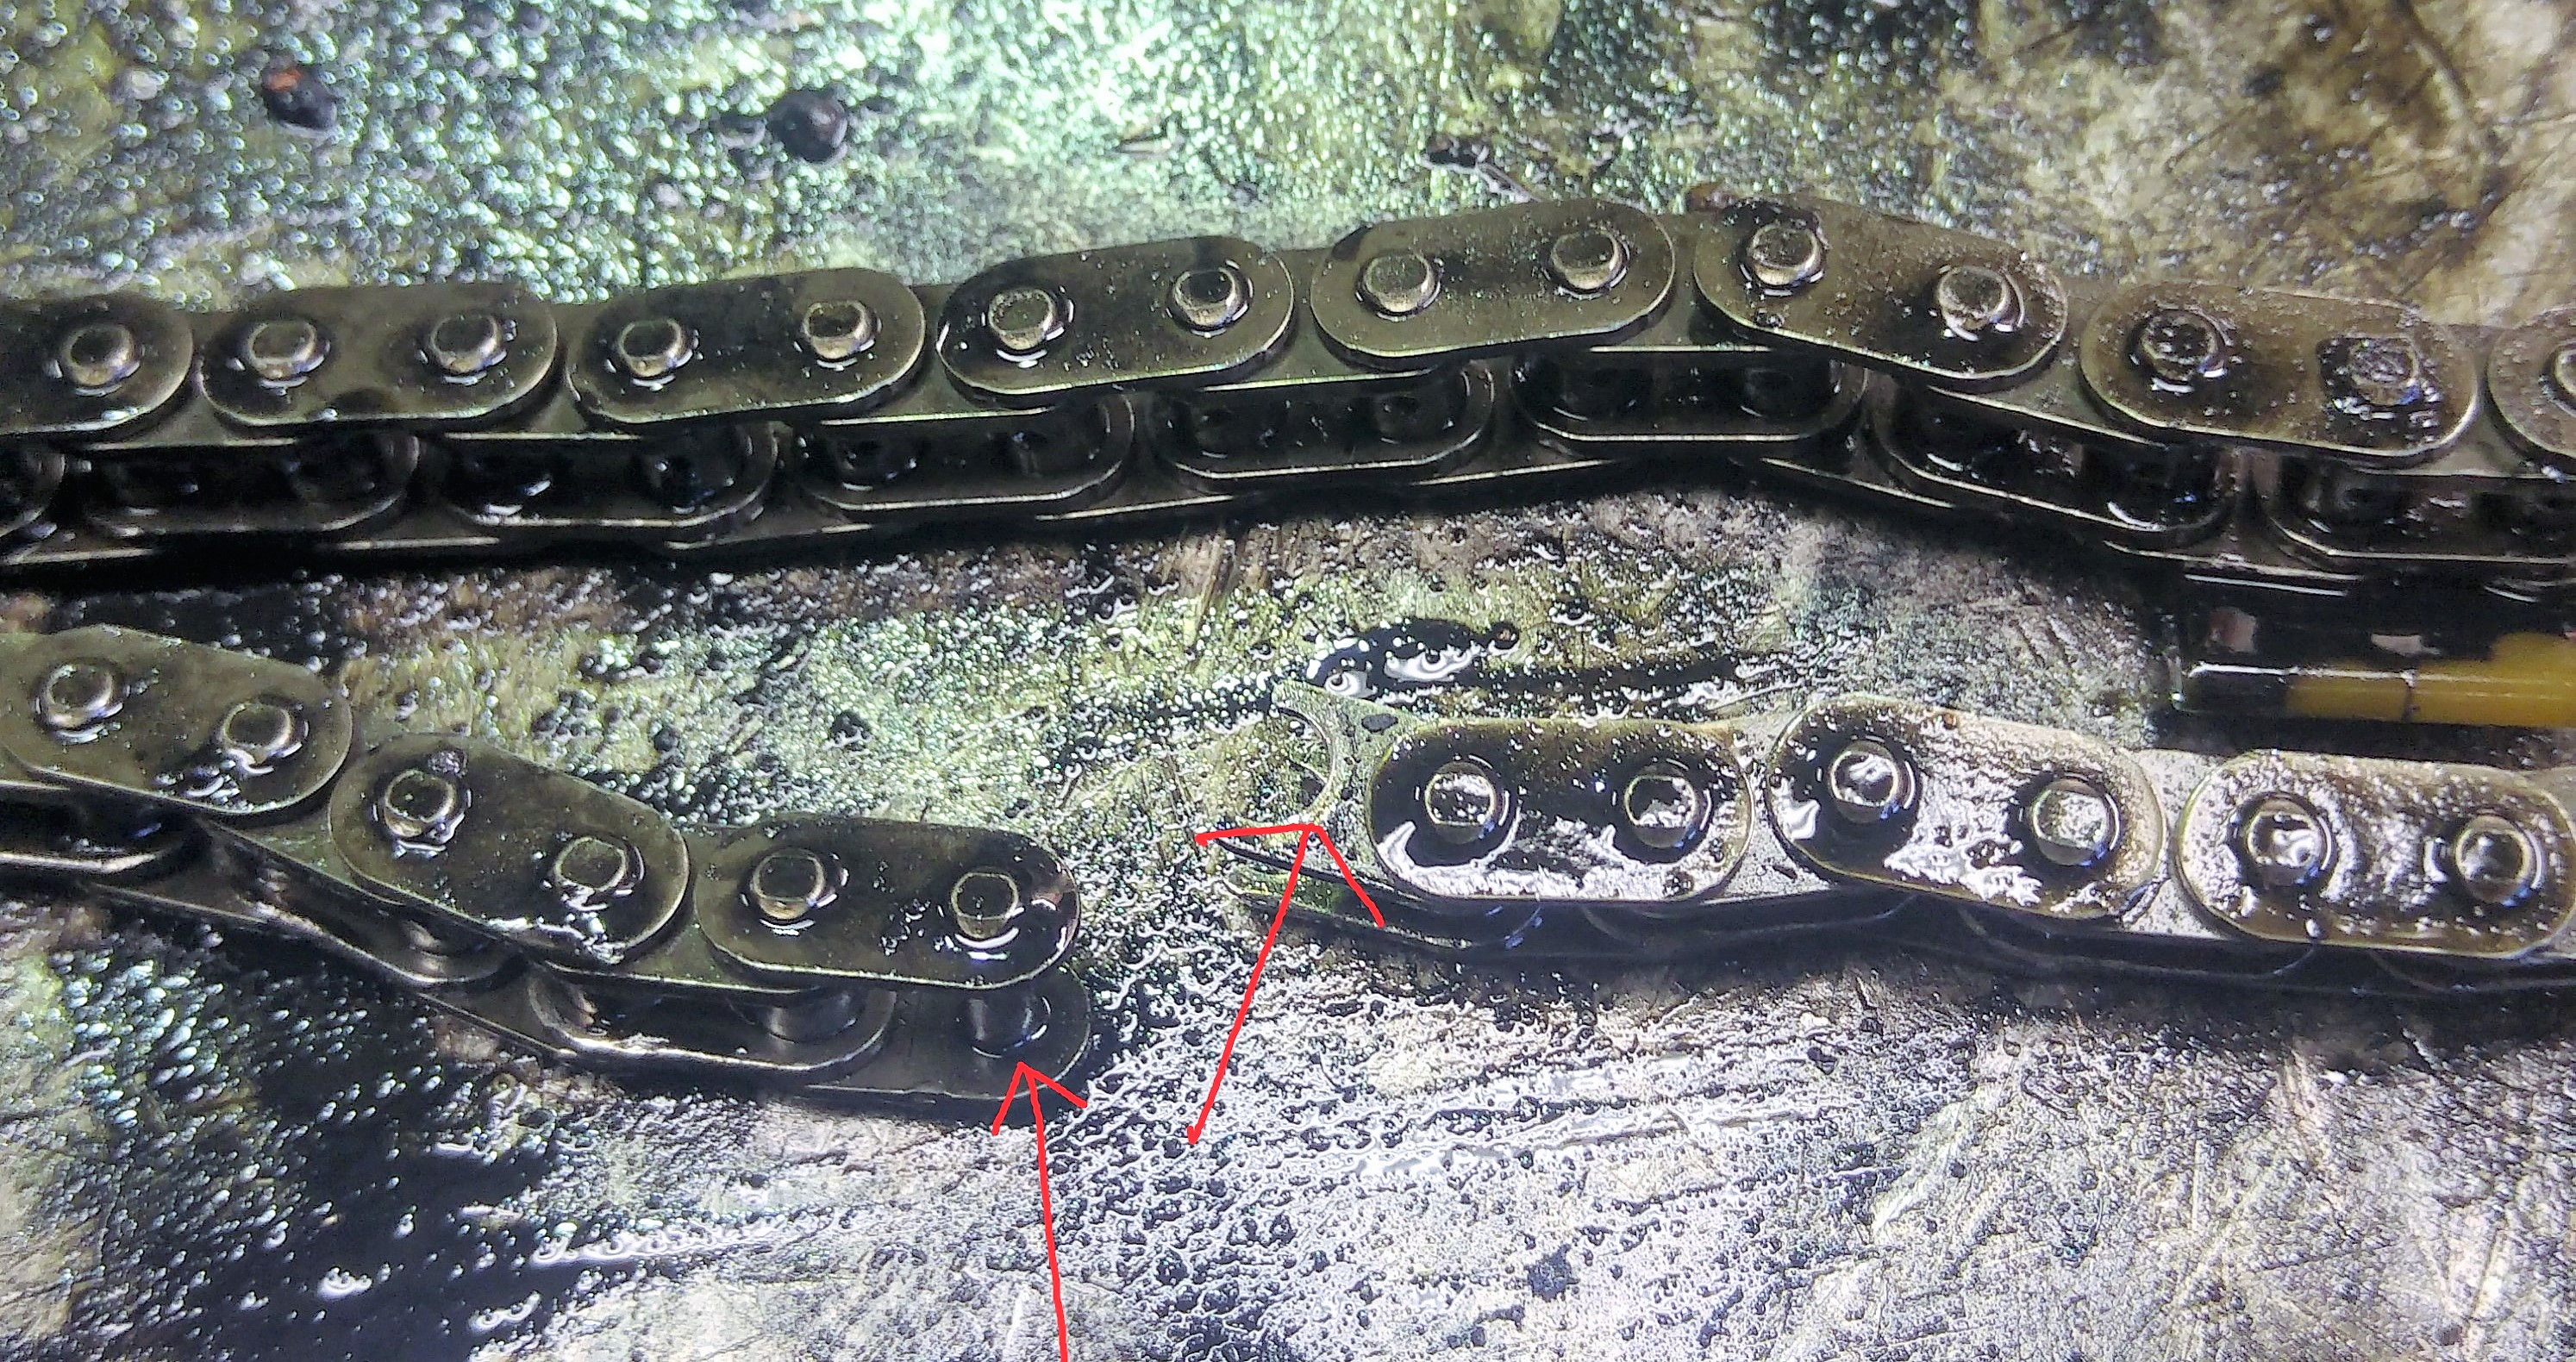 BMW TIMING CHAIN FAILURE